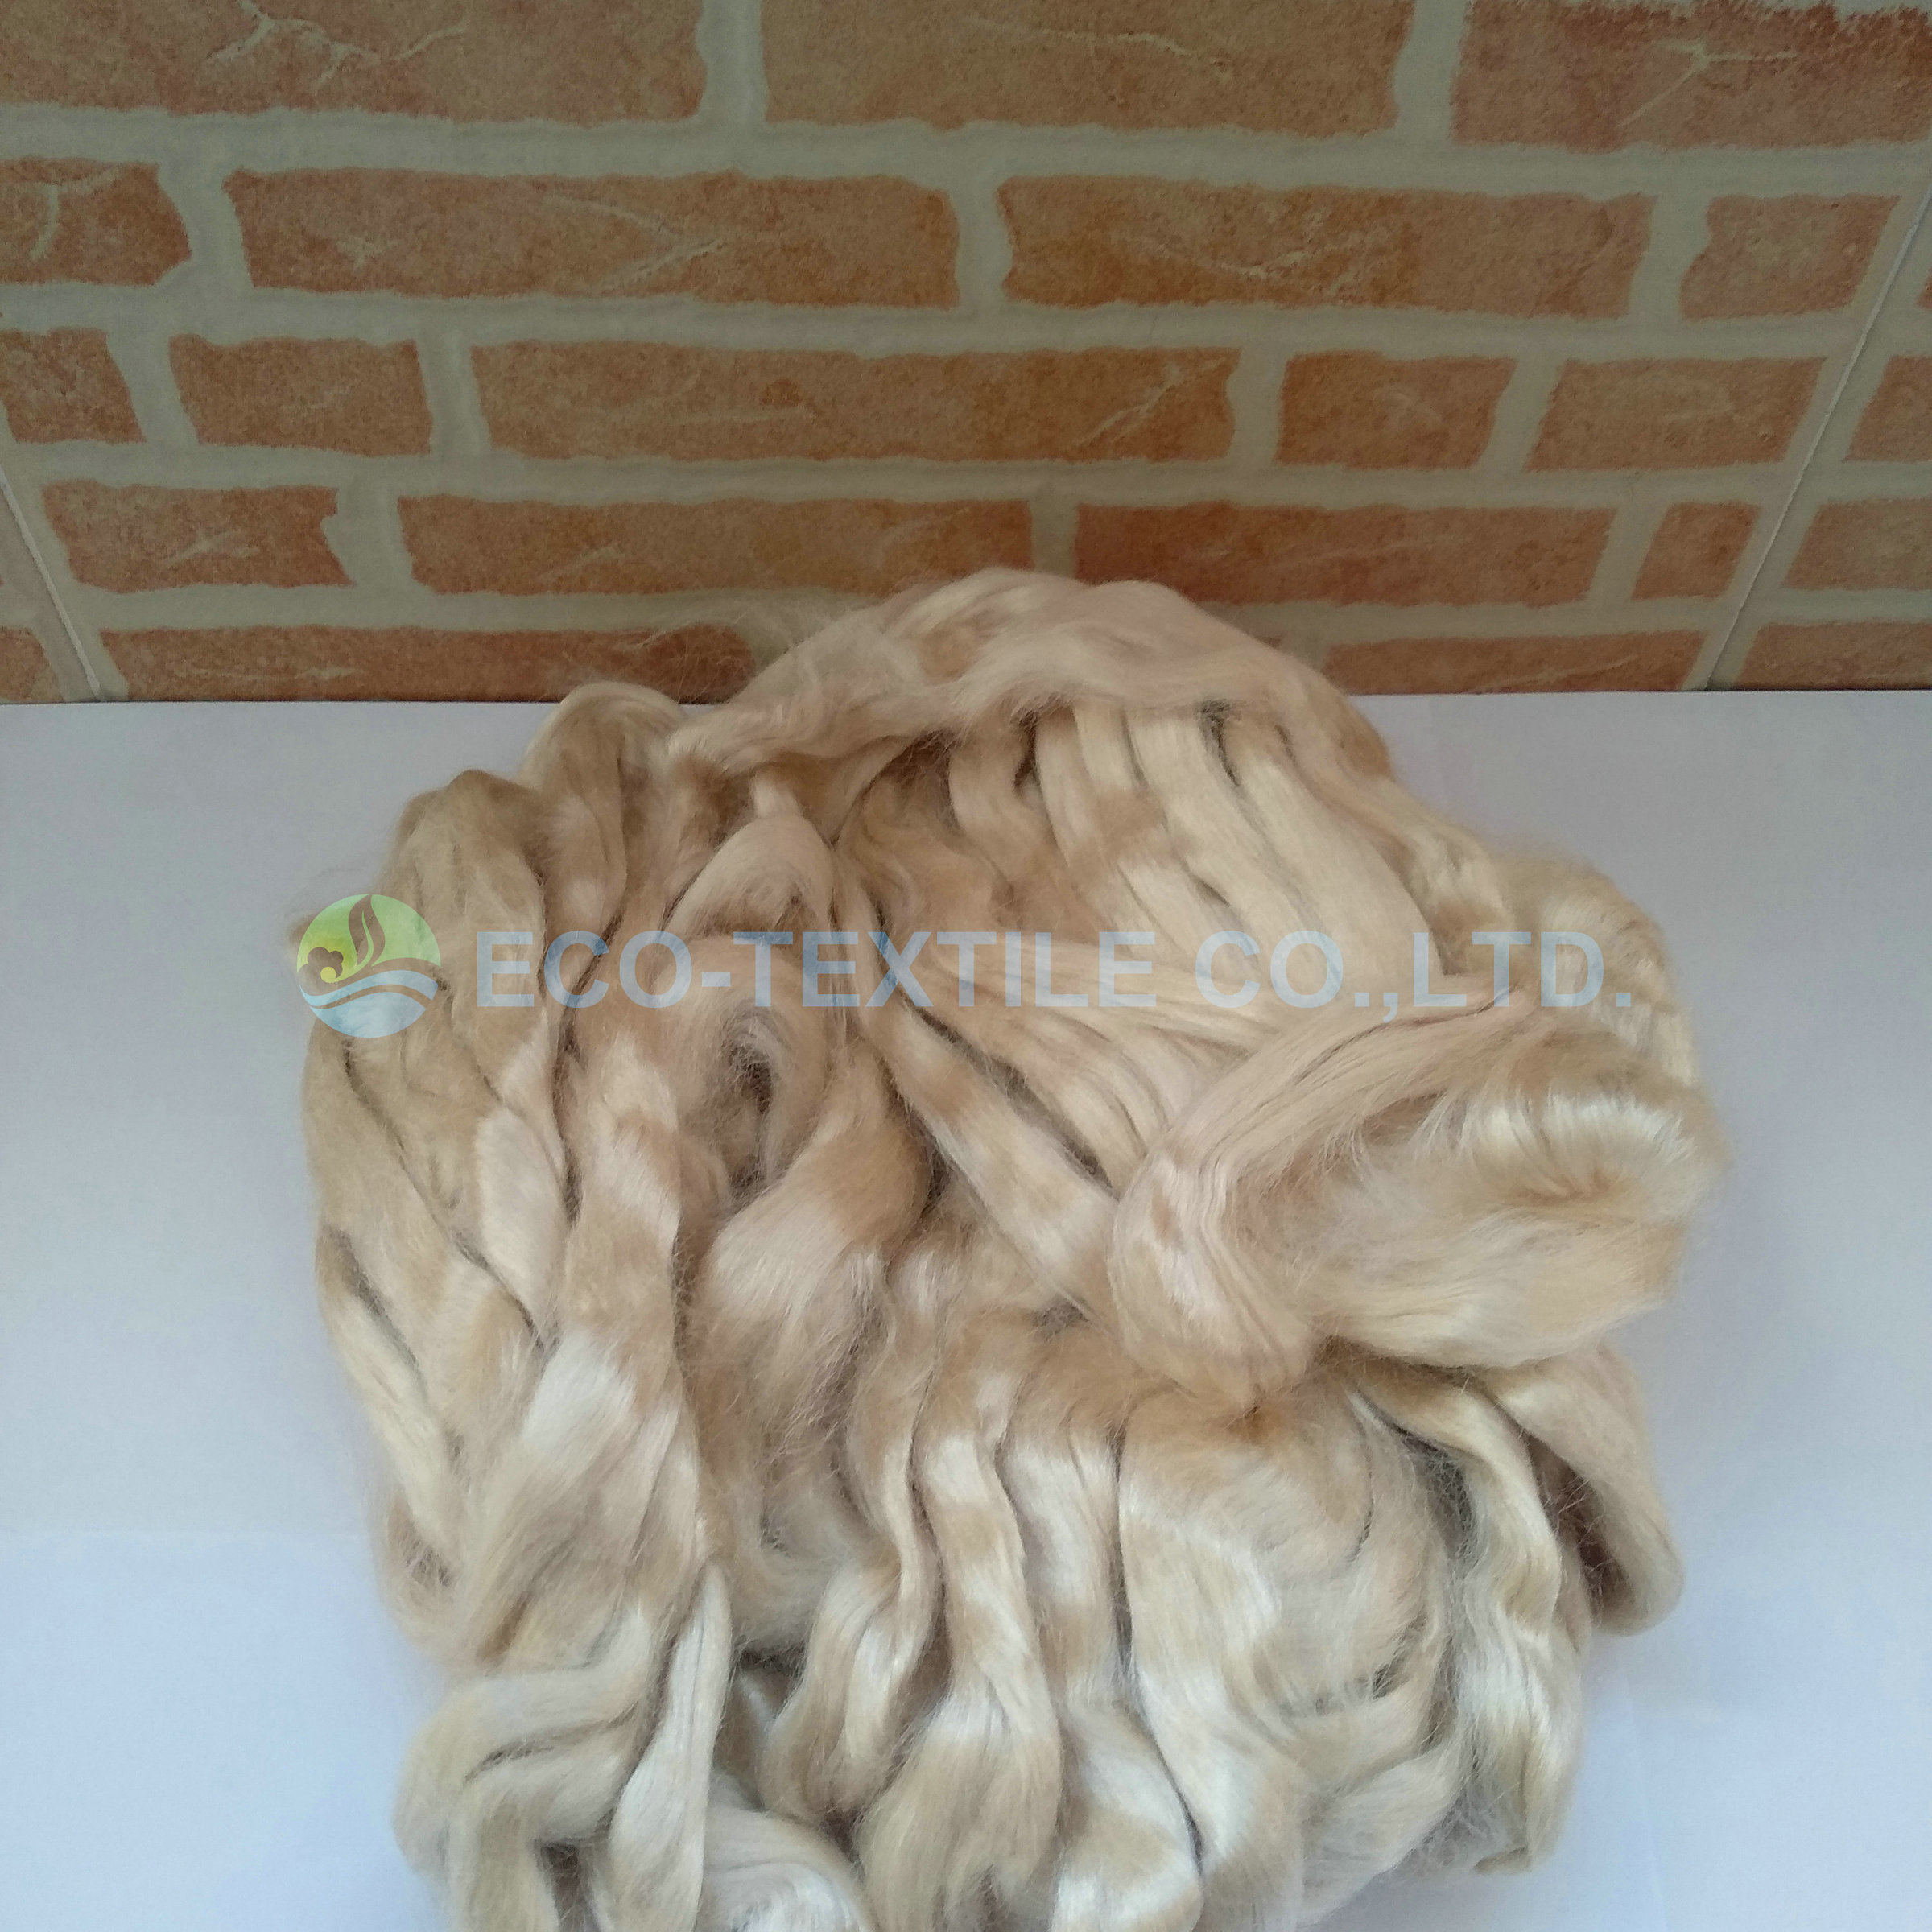 NATURAL GOLDEN BROWN TUSSAH SILK SLIVER-10g/m